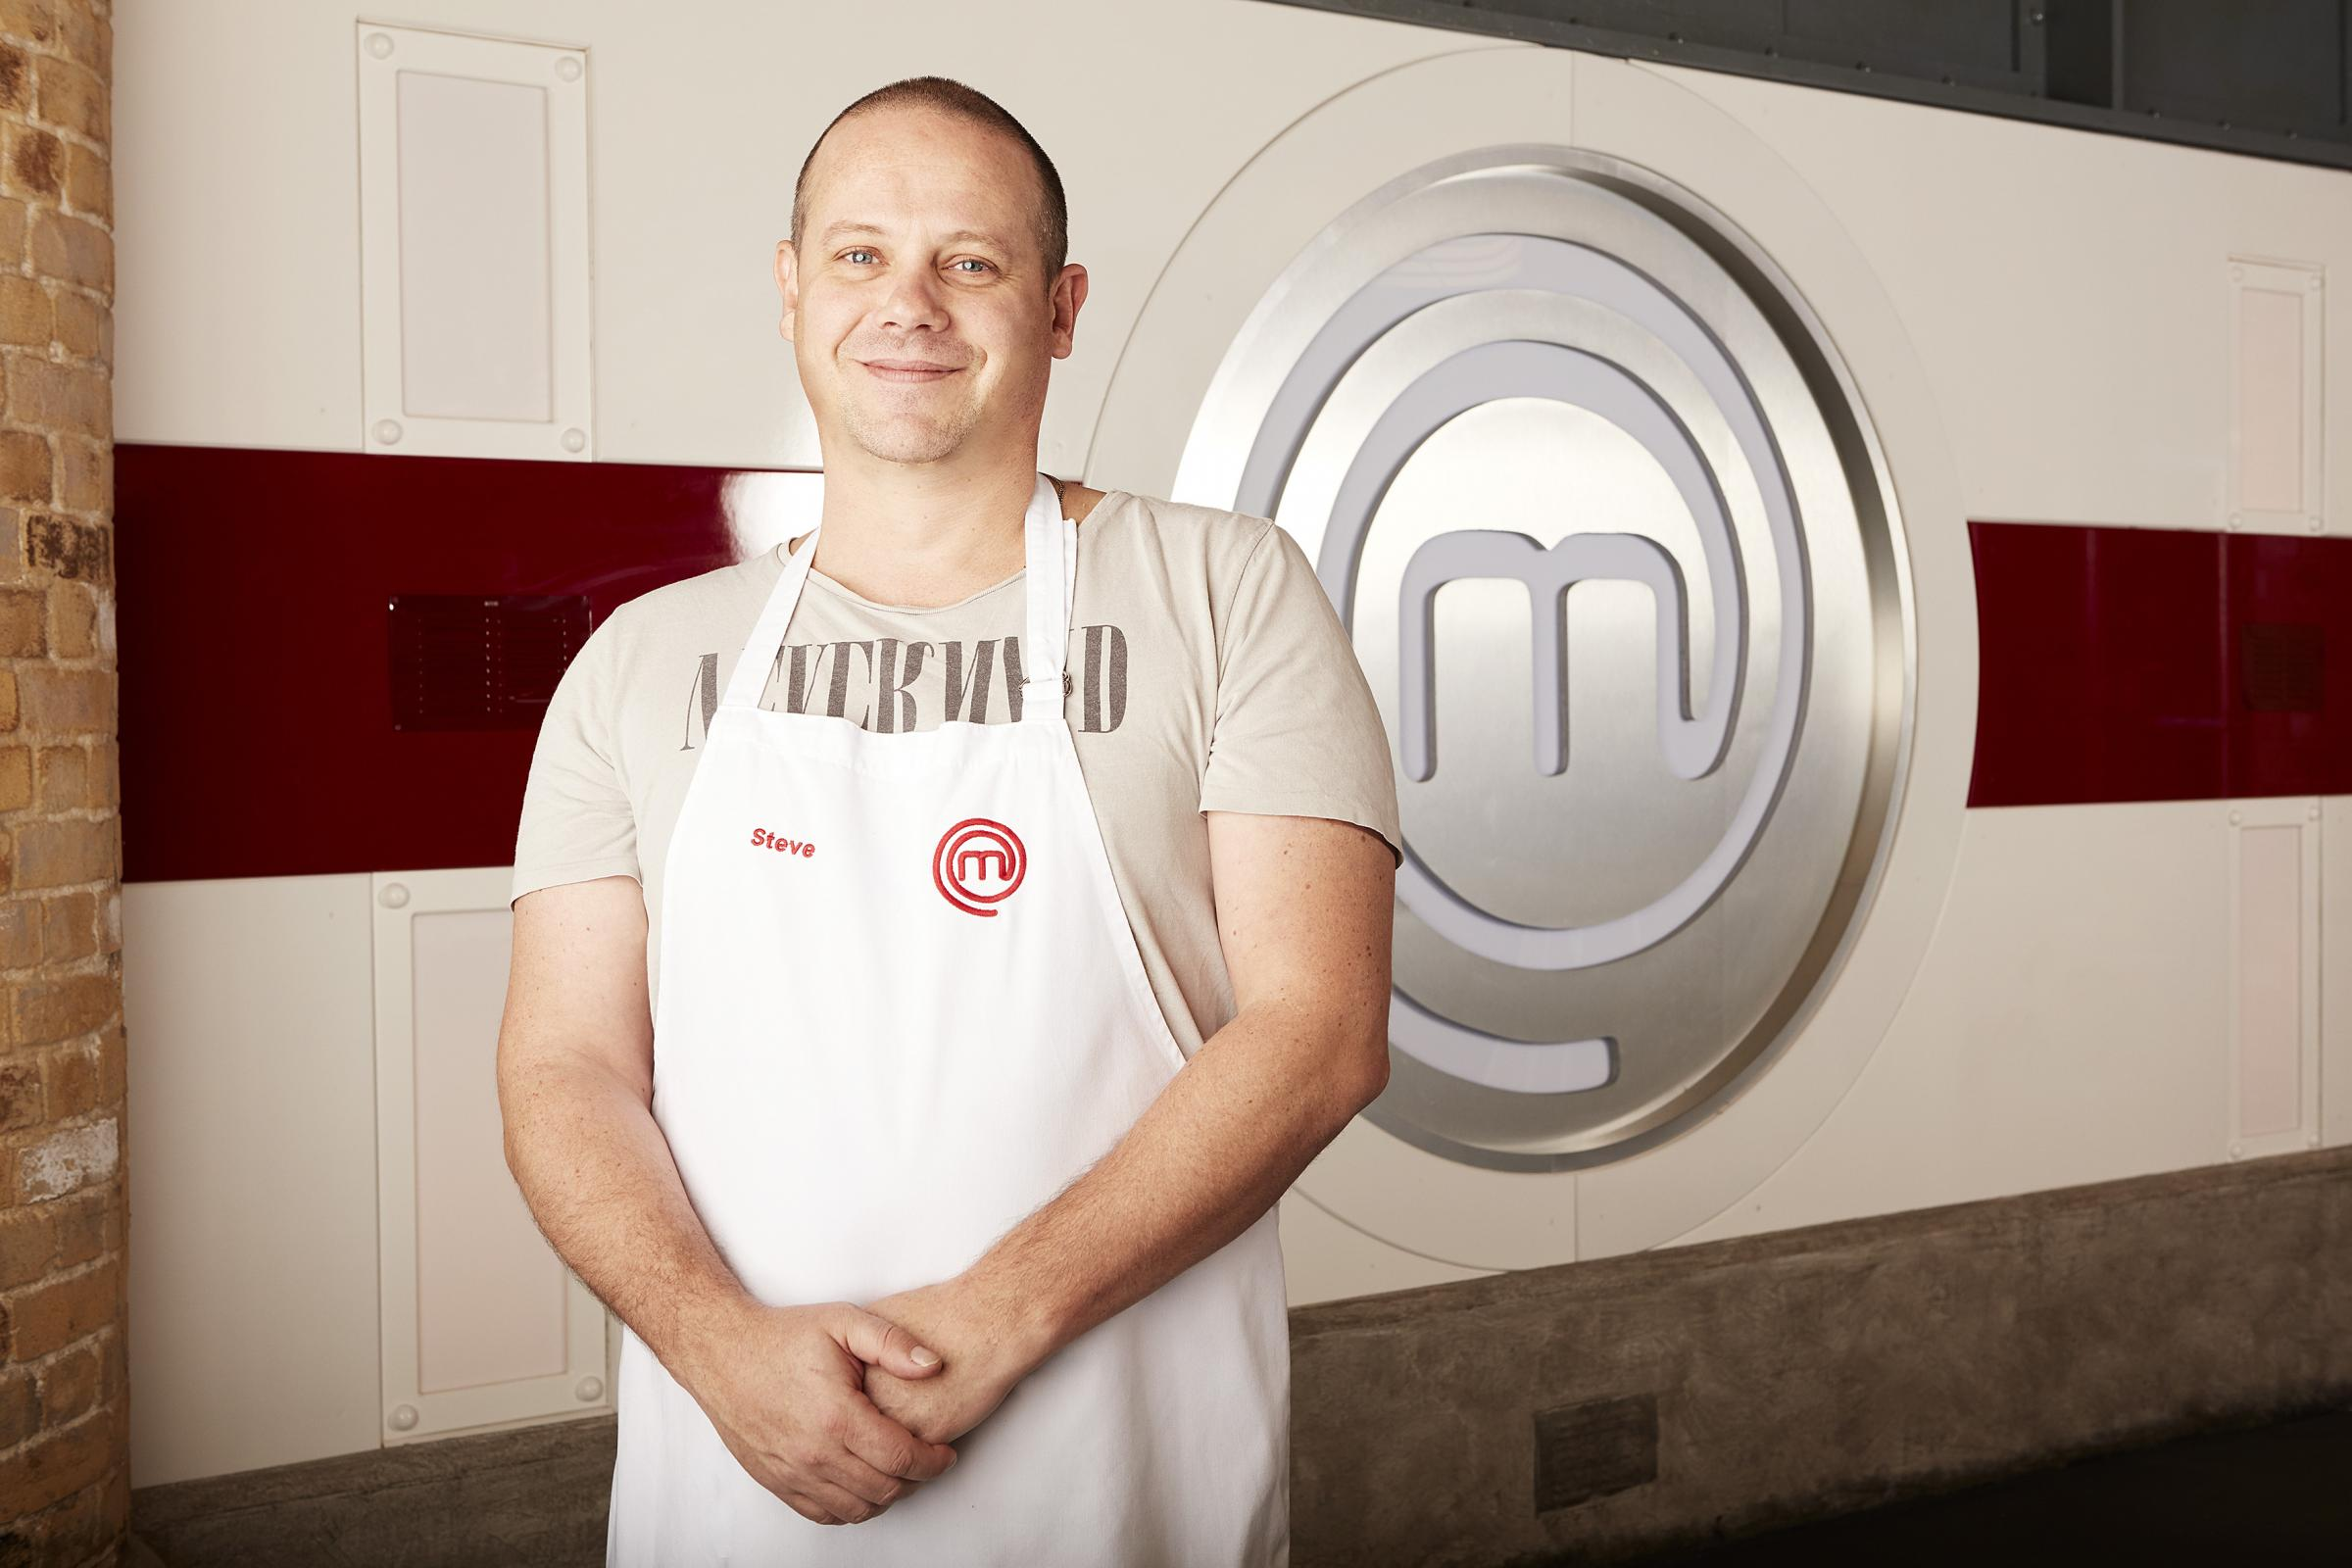 Steve, who lives in Woolwich, is a finalist on Masterchef